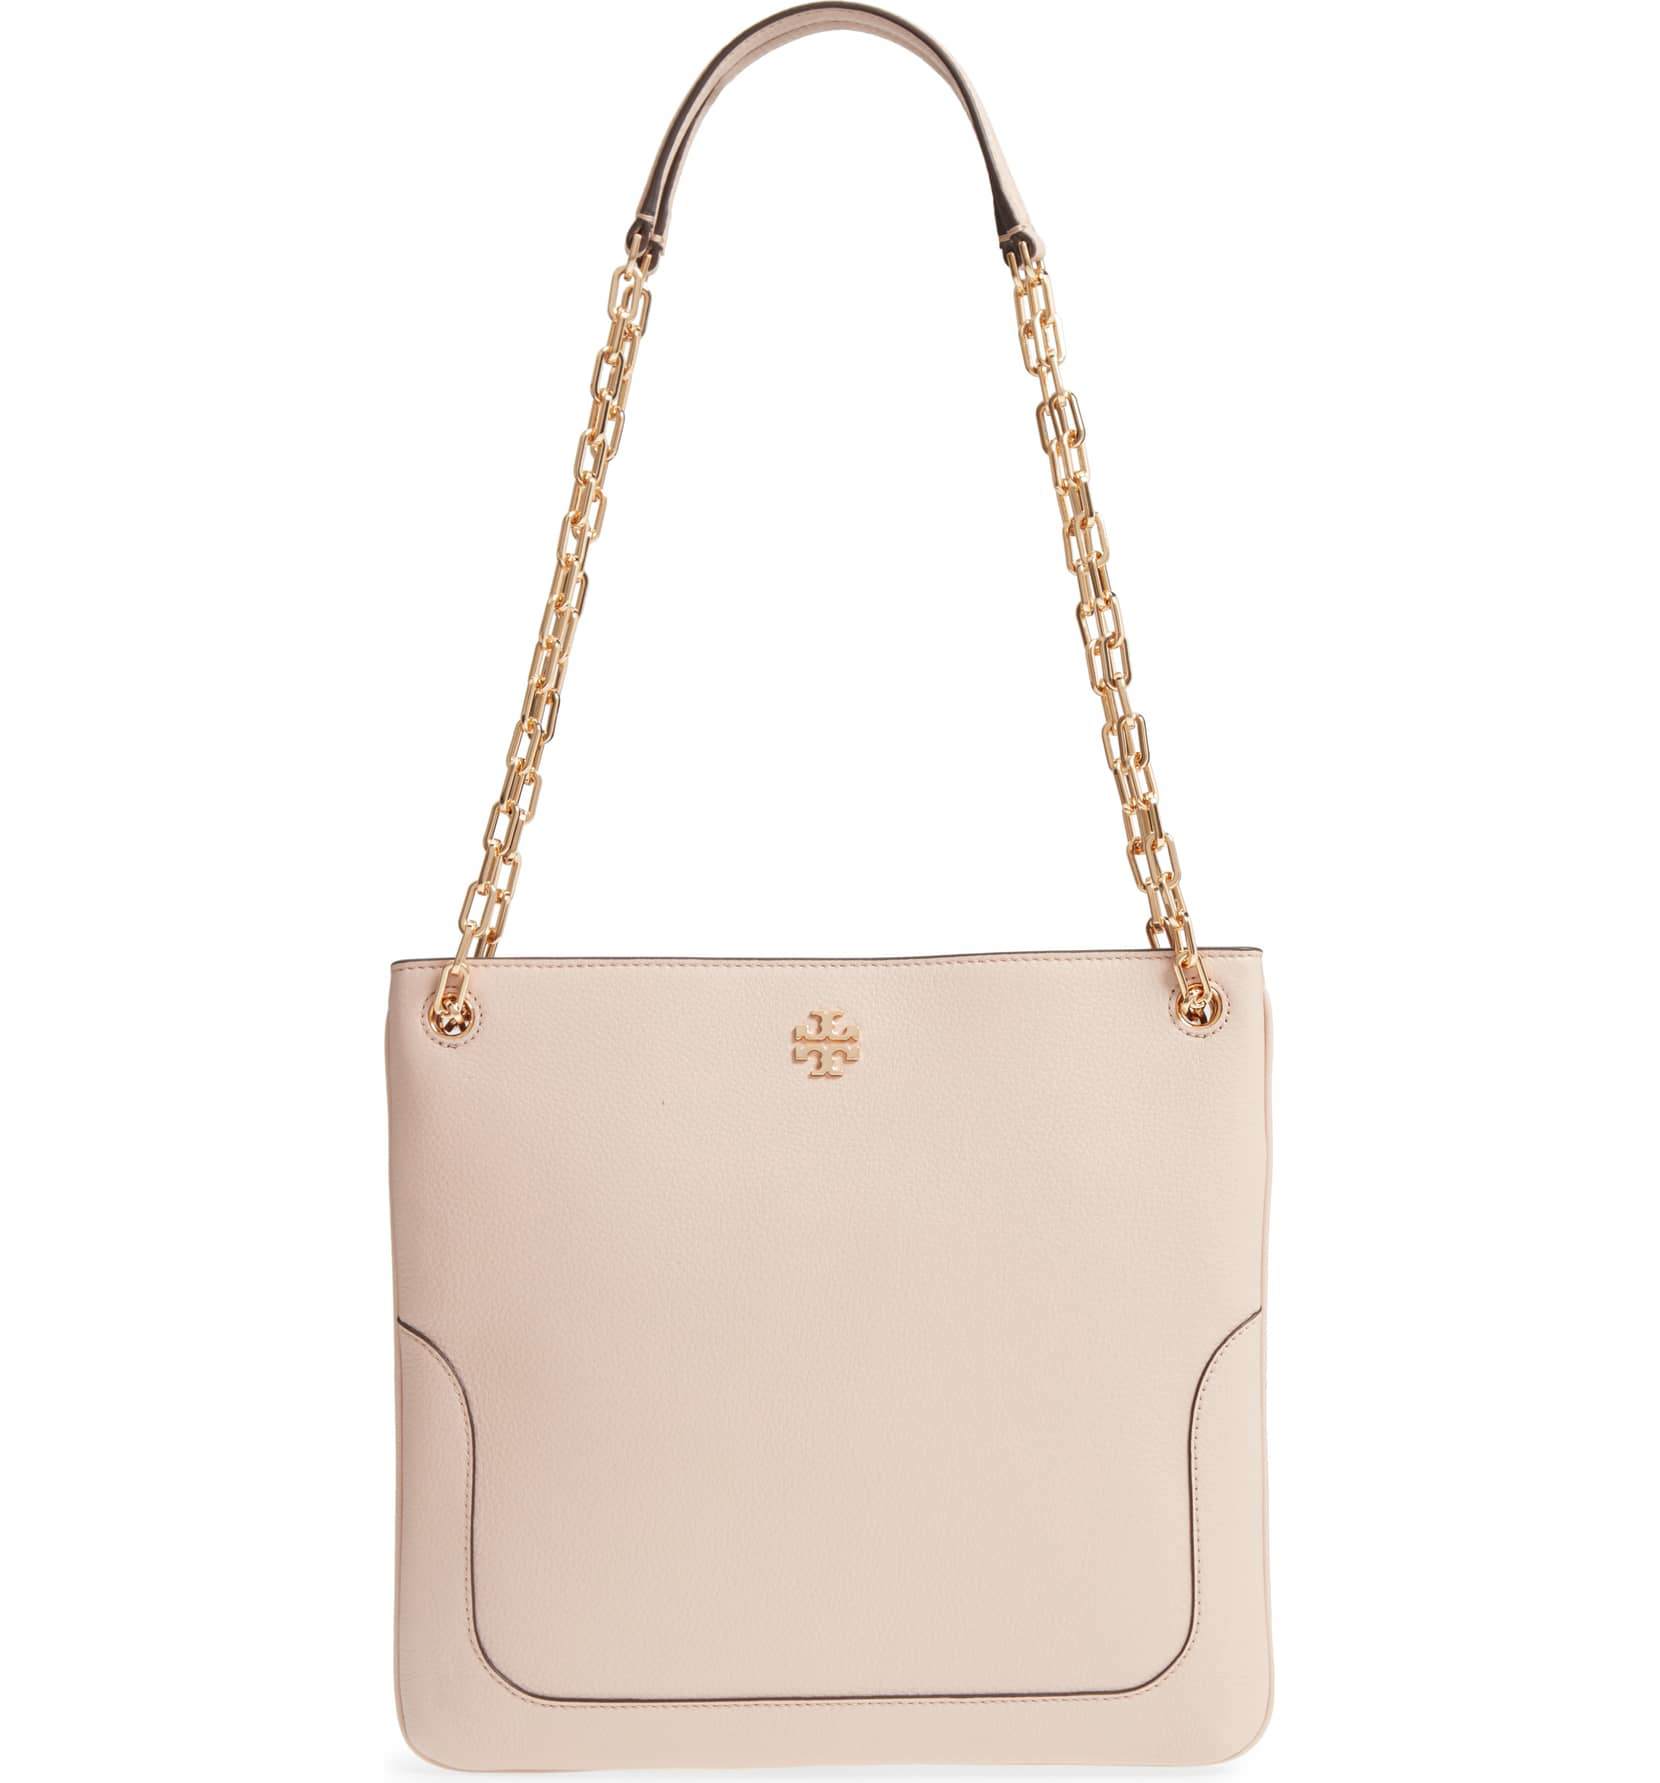 eaef8f65a9b These 5 Must-Have Tory Burch Bags Are on Sale at Nordstrom!